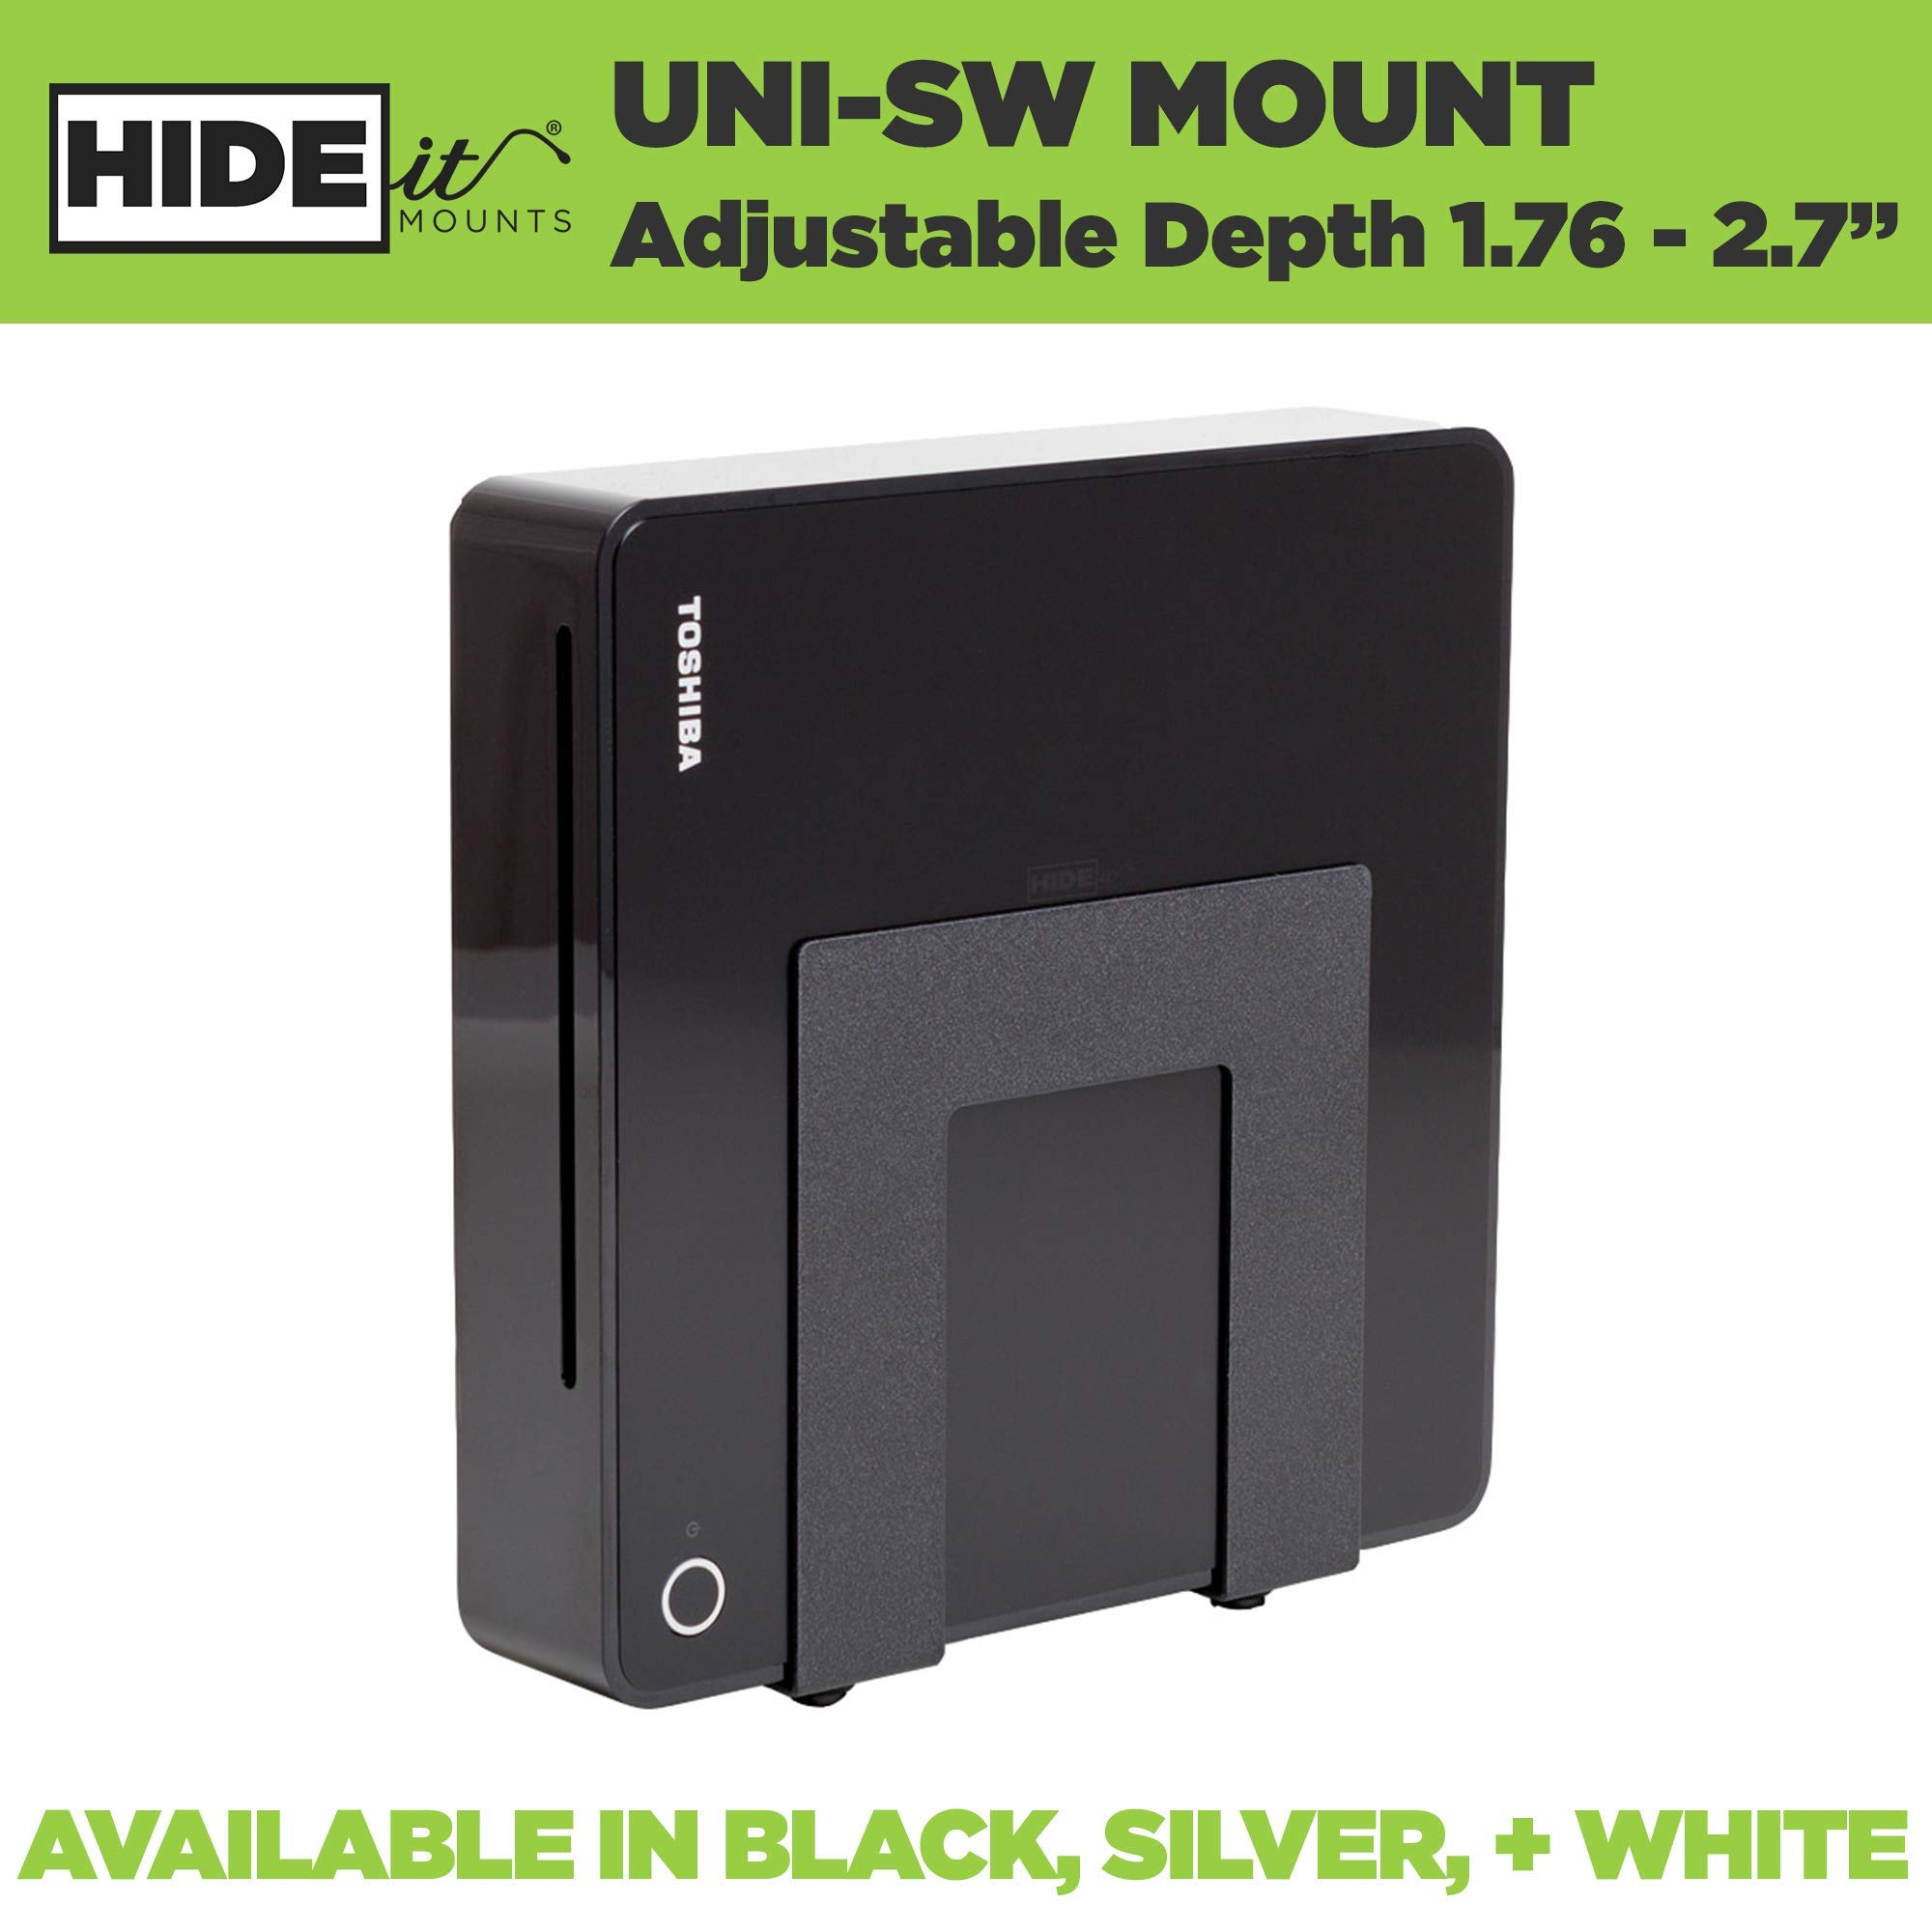 HIDEit Mounts Uni-SW Adjustable Cable Box Wall Mount for Small Devices, Cable Box Receivers, DVD Players, Routers, Modems, TV Box, Black Heavy Steel, Mount Behind TV or VESA Mount